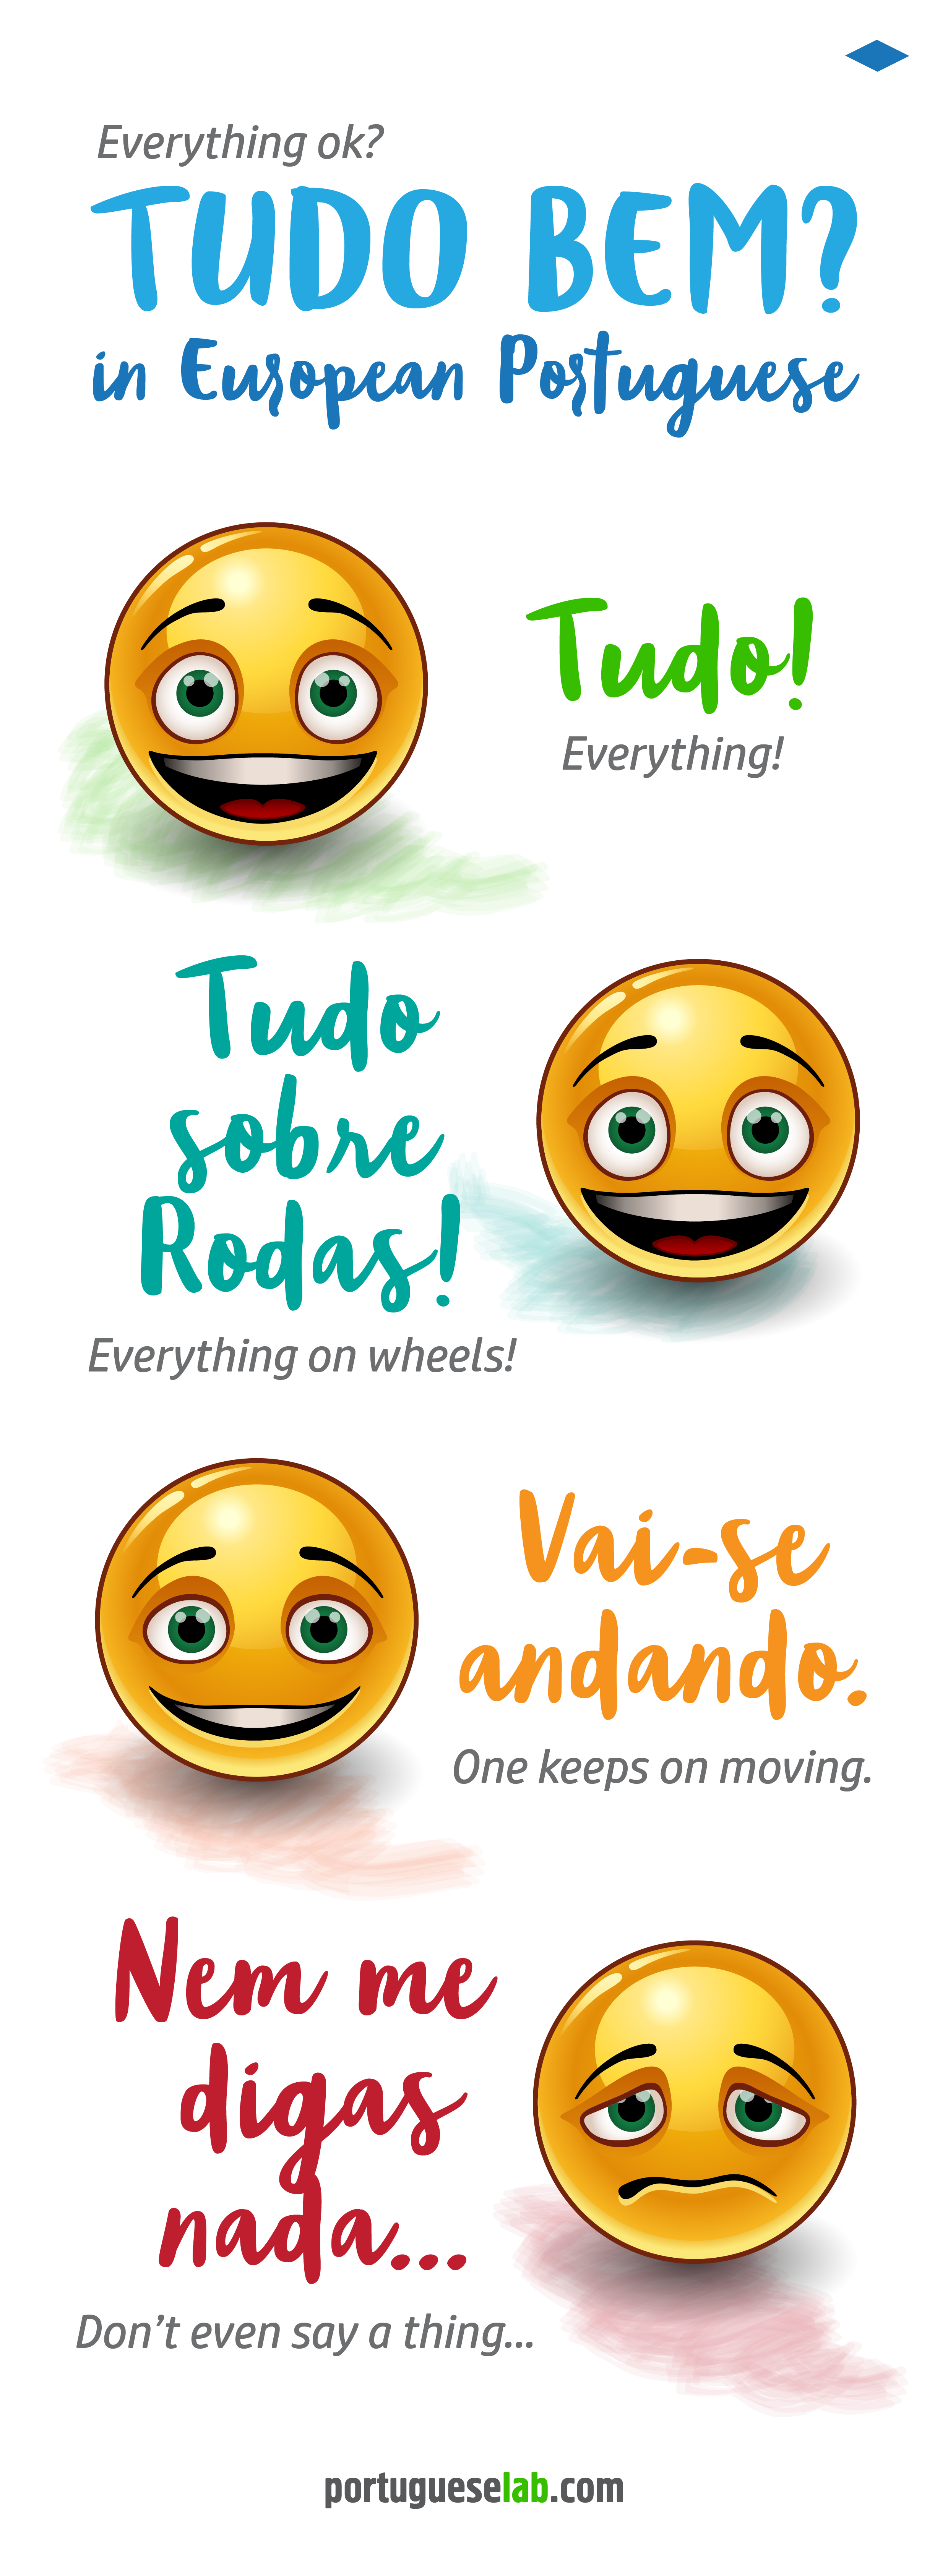 Learn european portuguese how to greet someone in an informal way learn european portuguese how to greet someone in an informal way tu m4hsunfo